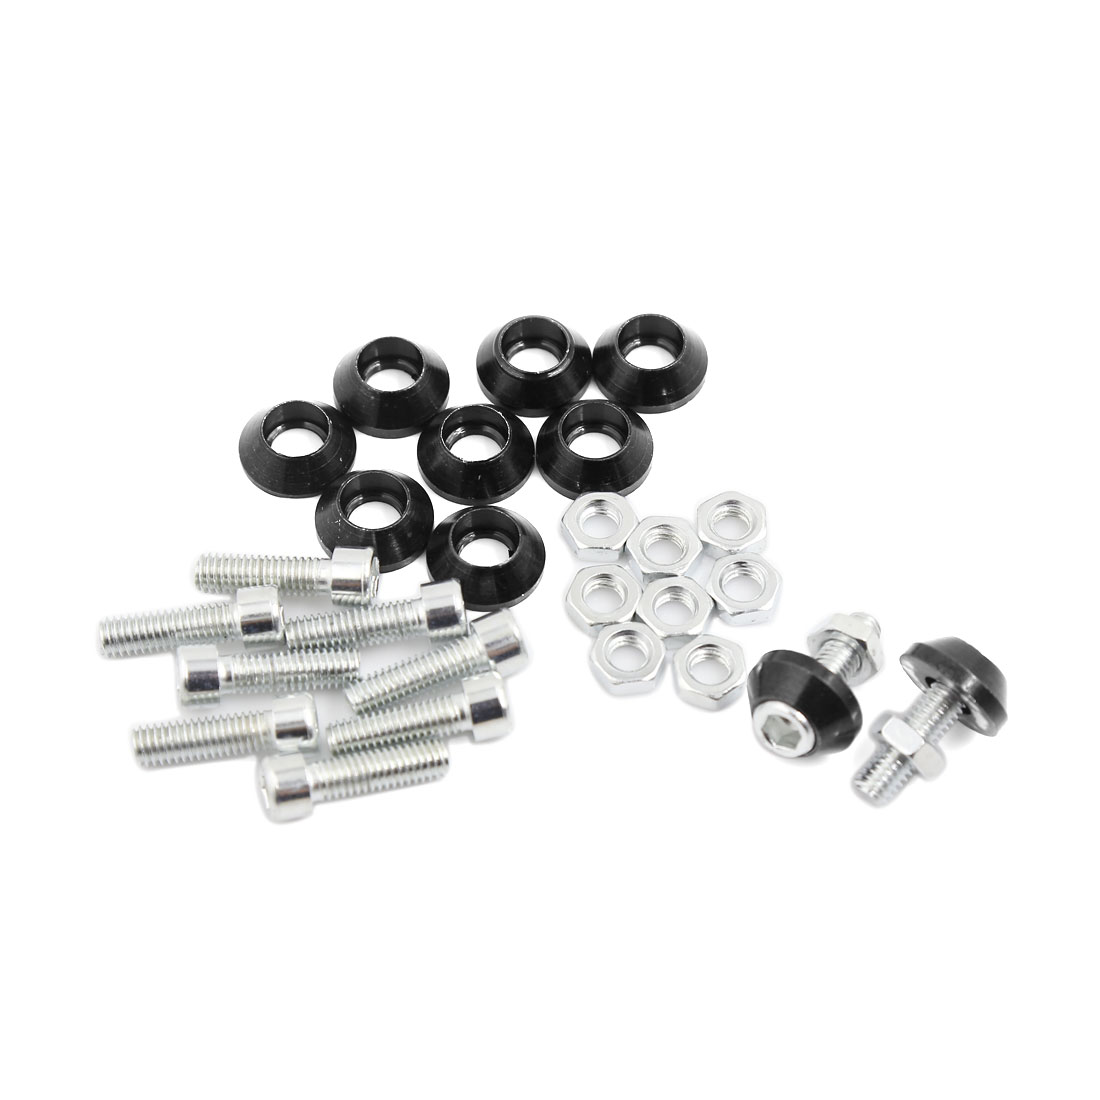 10 Pcs Black Metal Cone Head License Plate Bolt Screw 6mm Dia for Motorcycle